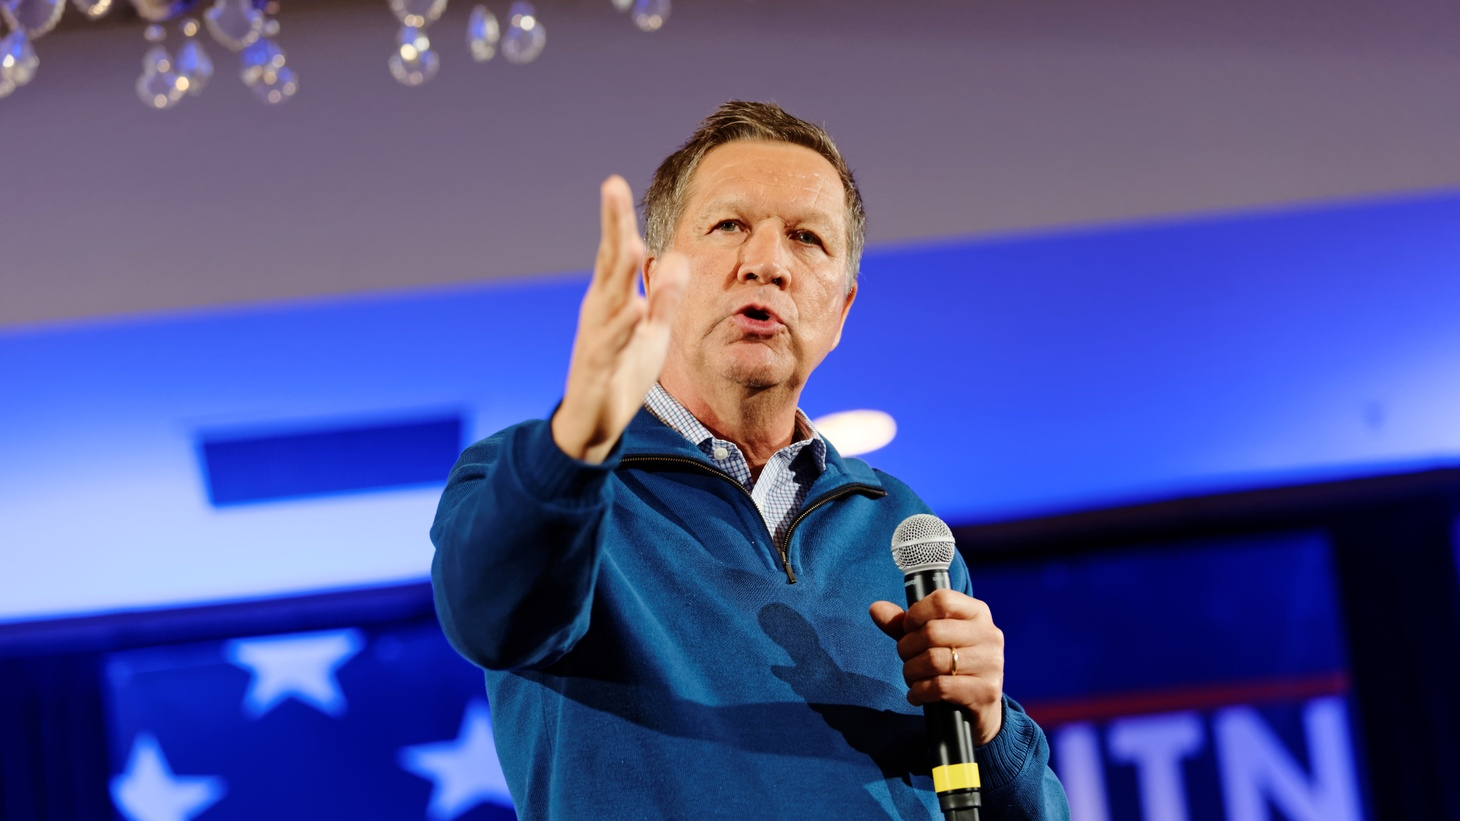 After a blistering defeat in Iowa, Ohio Gov. John Kasich took second place in the New Hampshire primary yesterday. Kasich appealed to New Hampshire's more centrist voters with promises of reasonable, pragmatic leadership. He also spoke out against what he called the inflammatory rhetoric of Donald Trump. In short, he cast himself as a moderate.